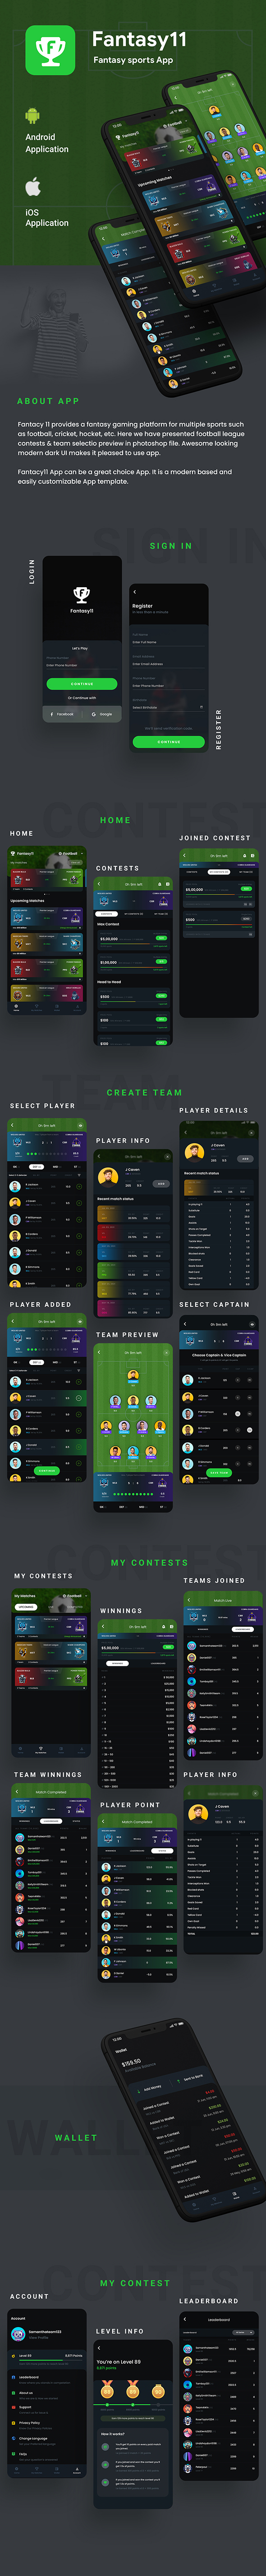 Fantasy League Contest Sports Android App Template+ iOS App Template | Flutter 2 | Fantasy 11 - 3